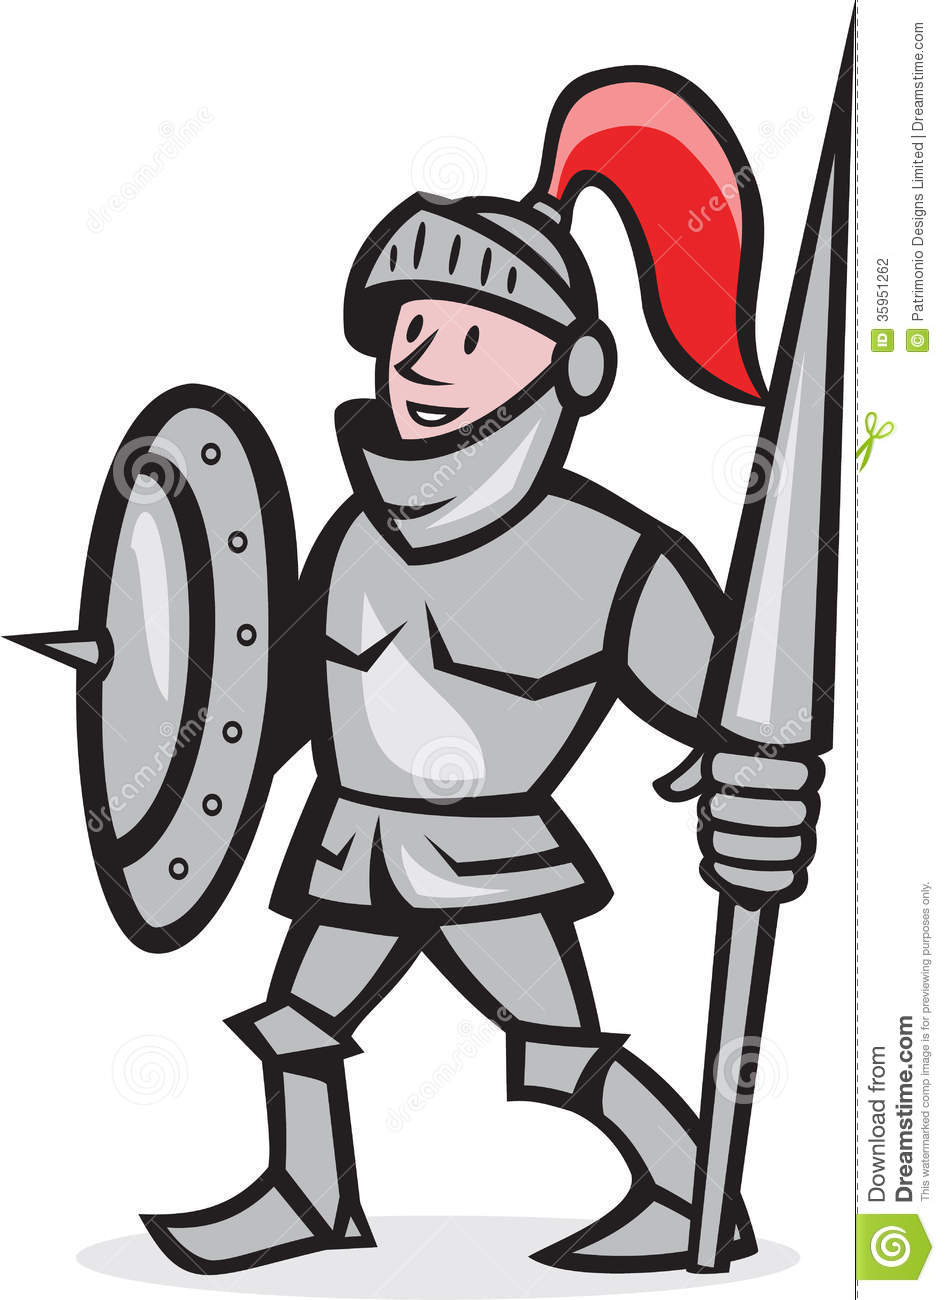 Clipart Of A Knight.